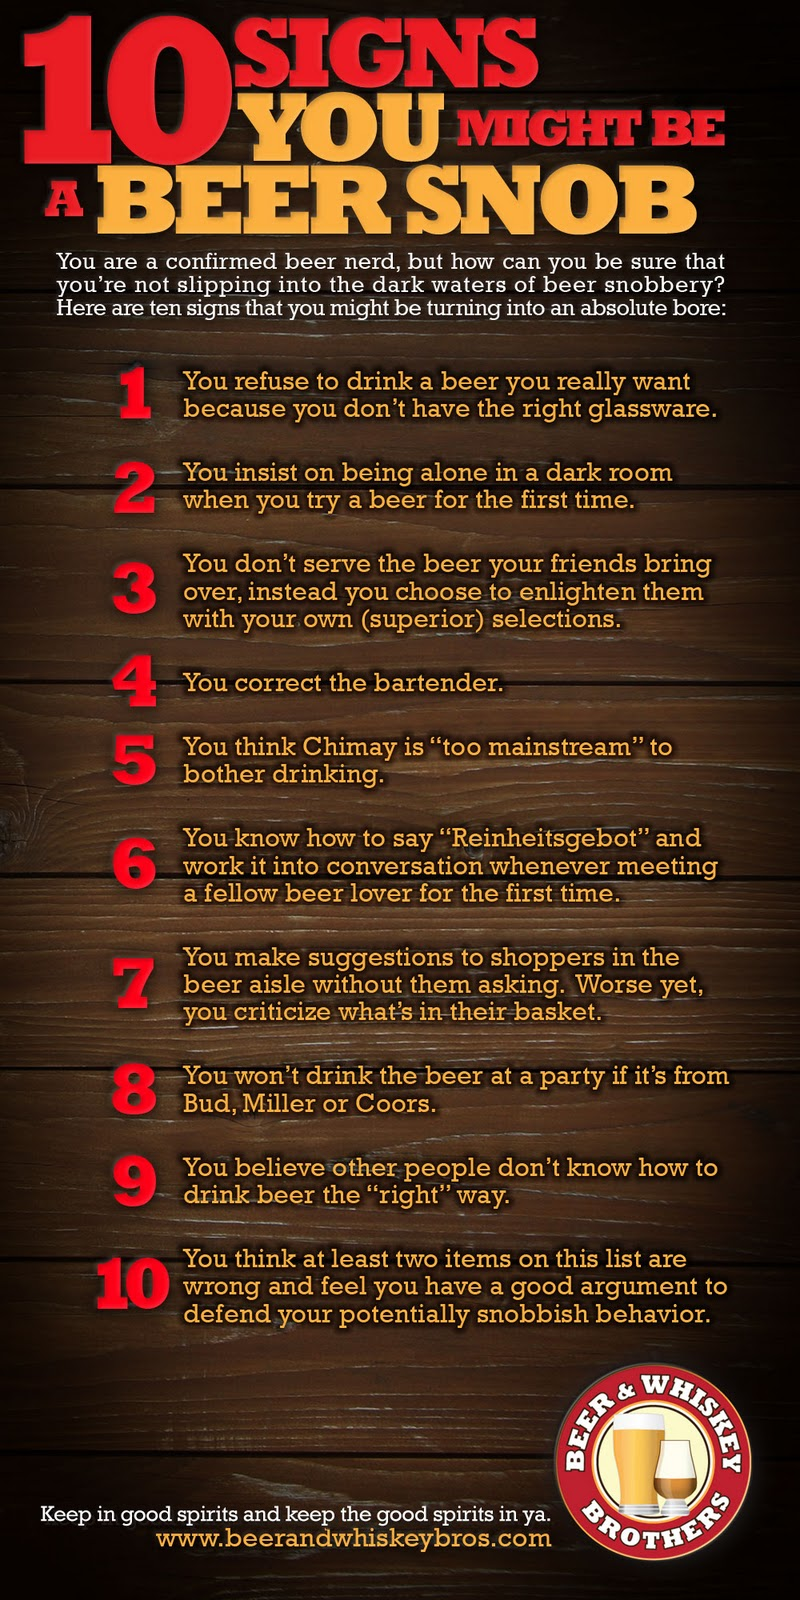 10 signs you might be a beer snob